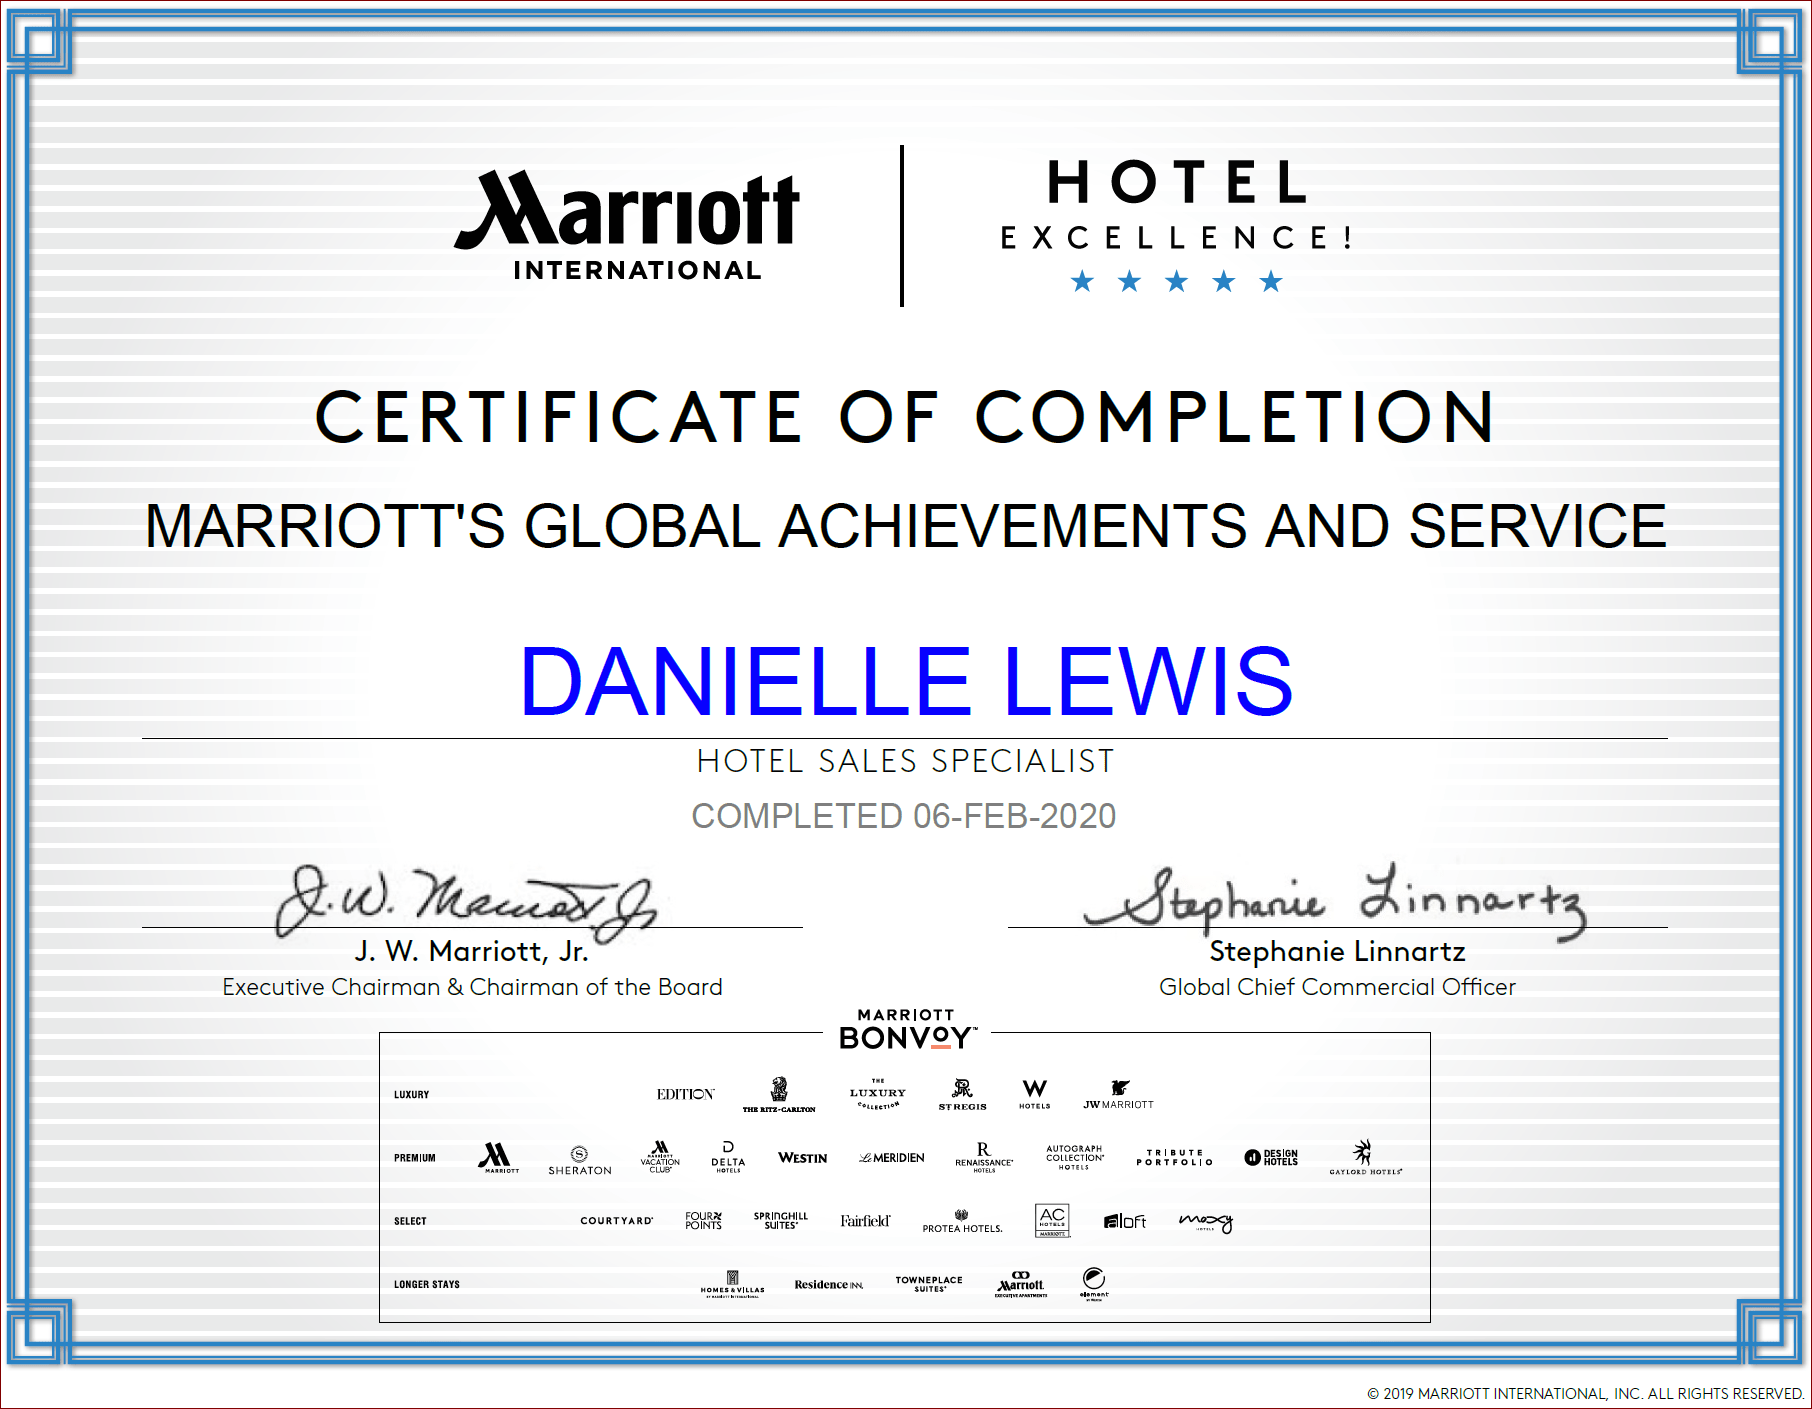 SelfishMe Travel - Marriott International Global Achievements and Service Certificate